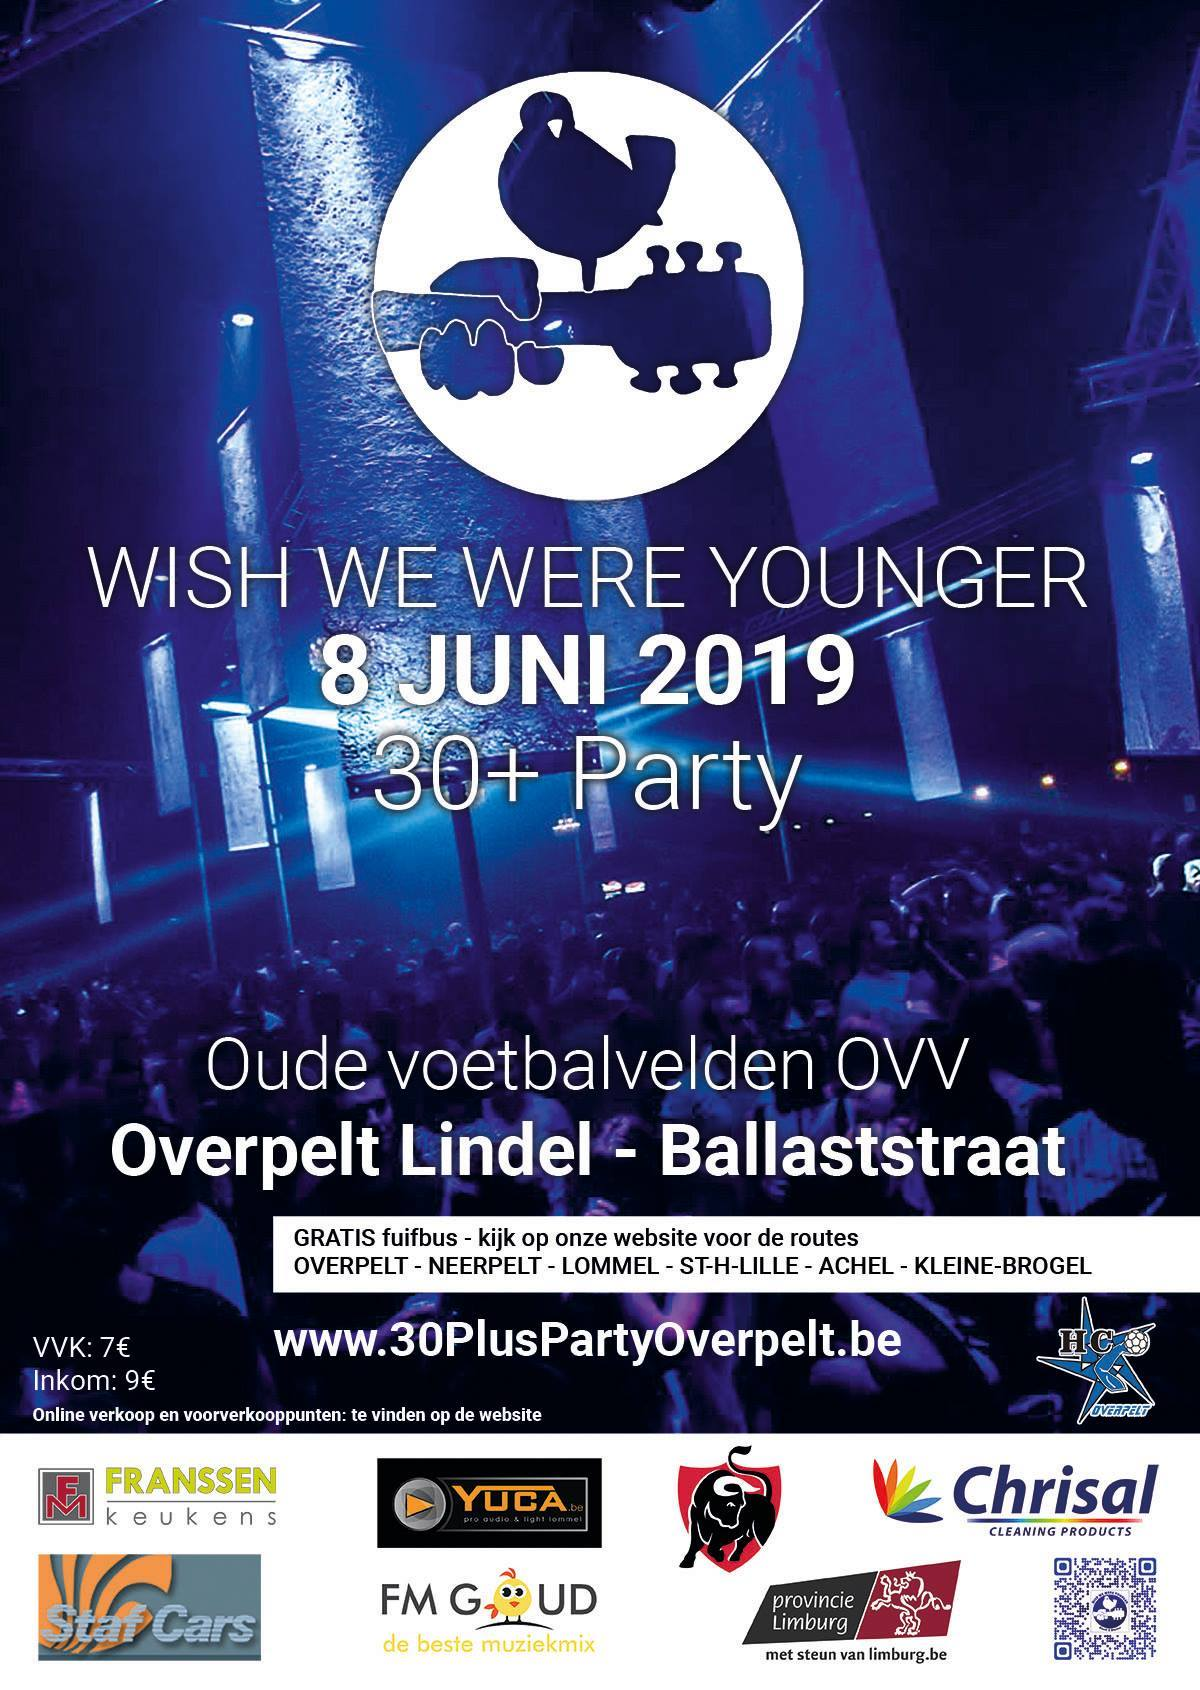 Wish-we-were-younger-party